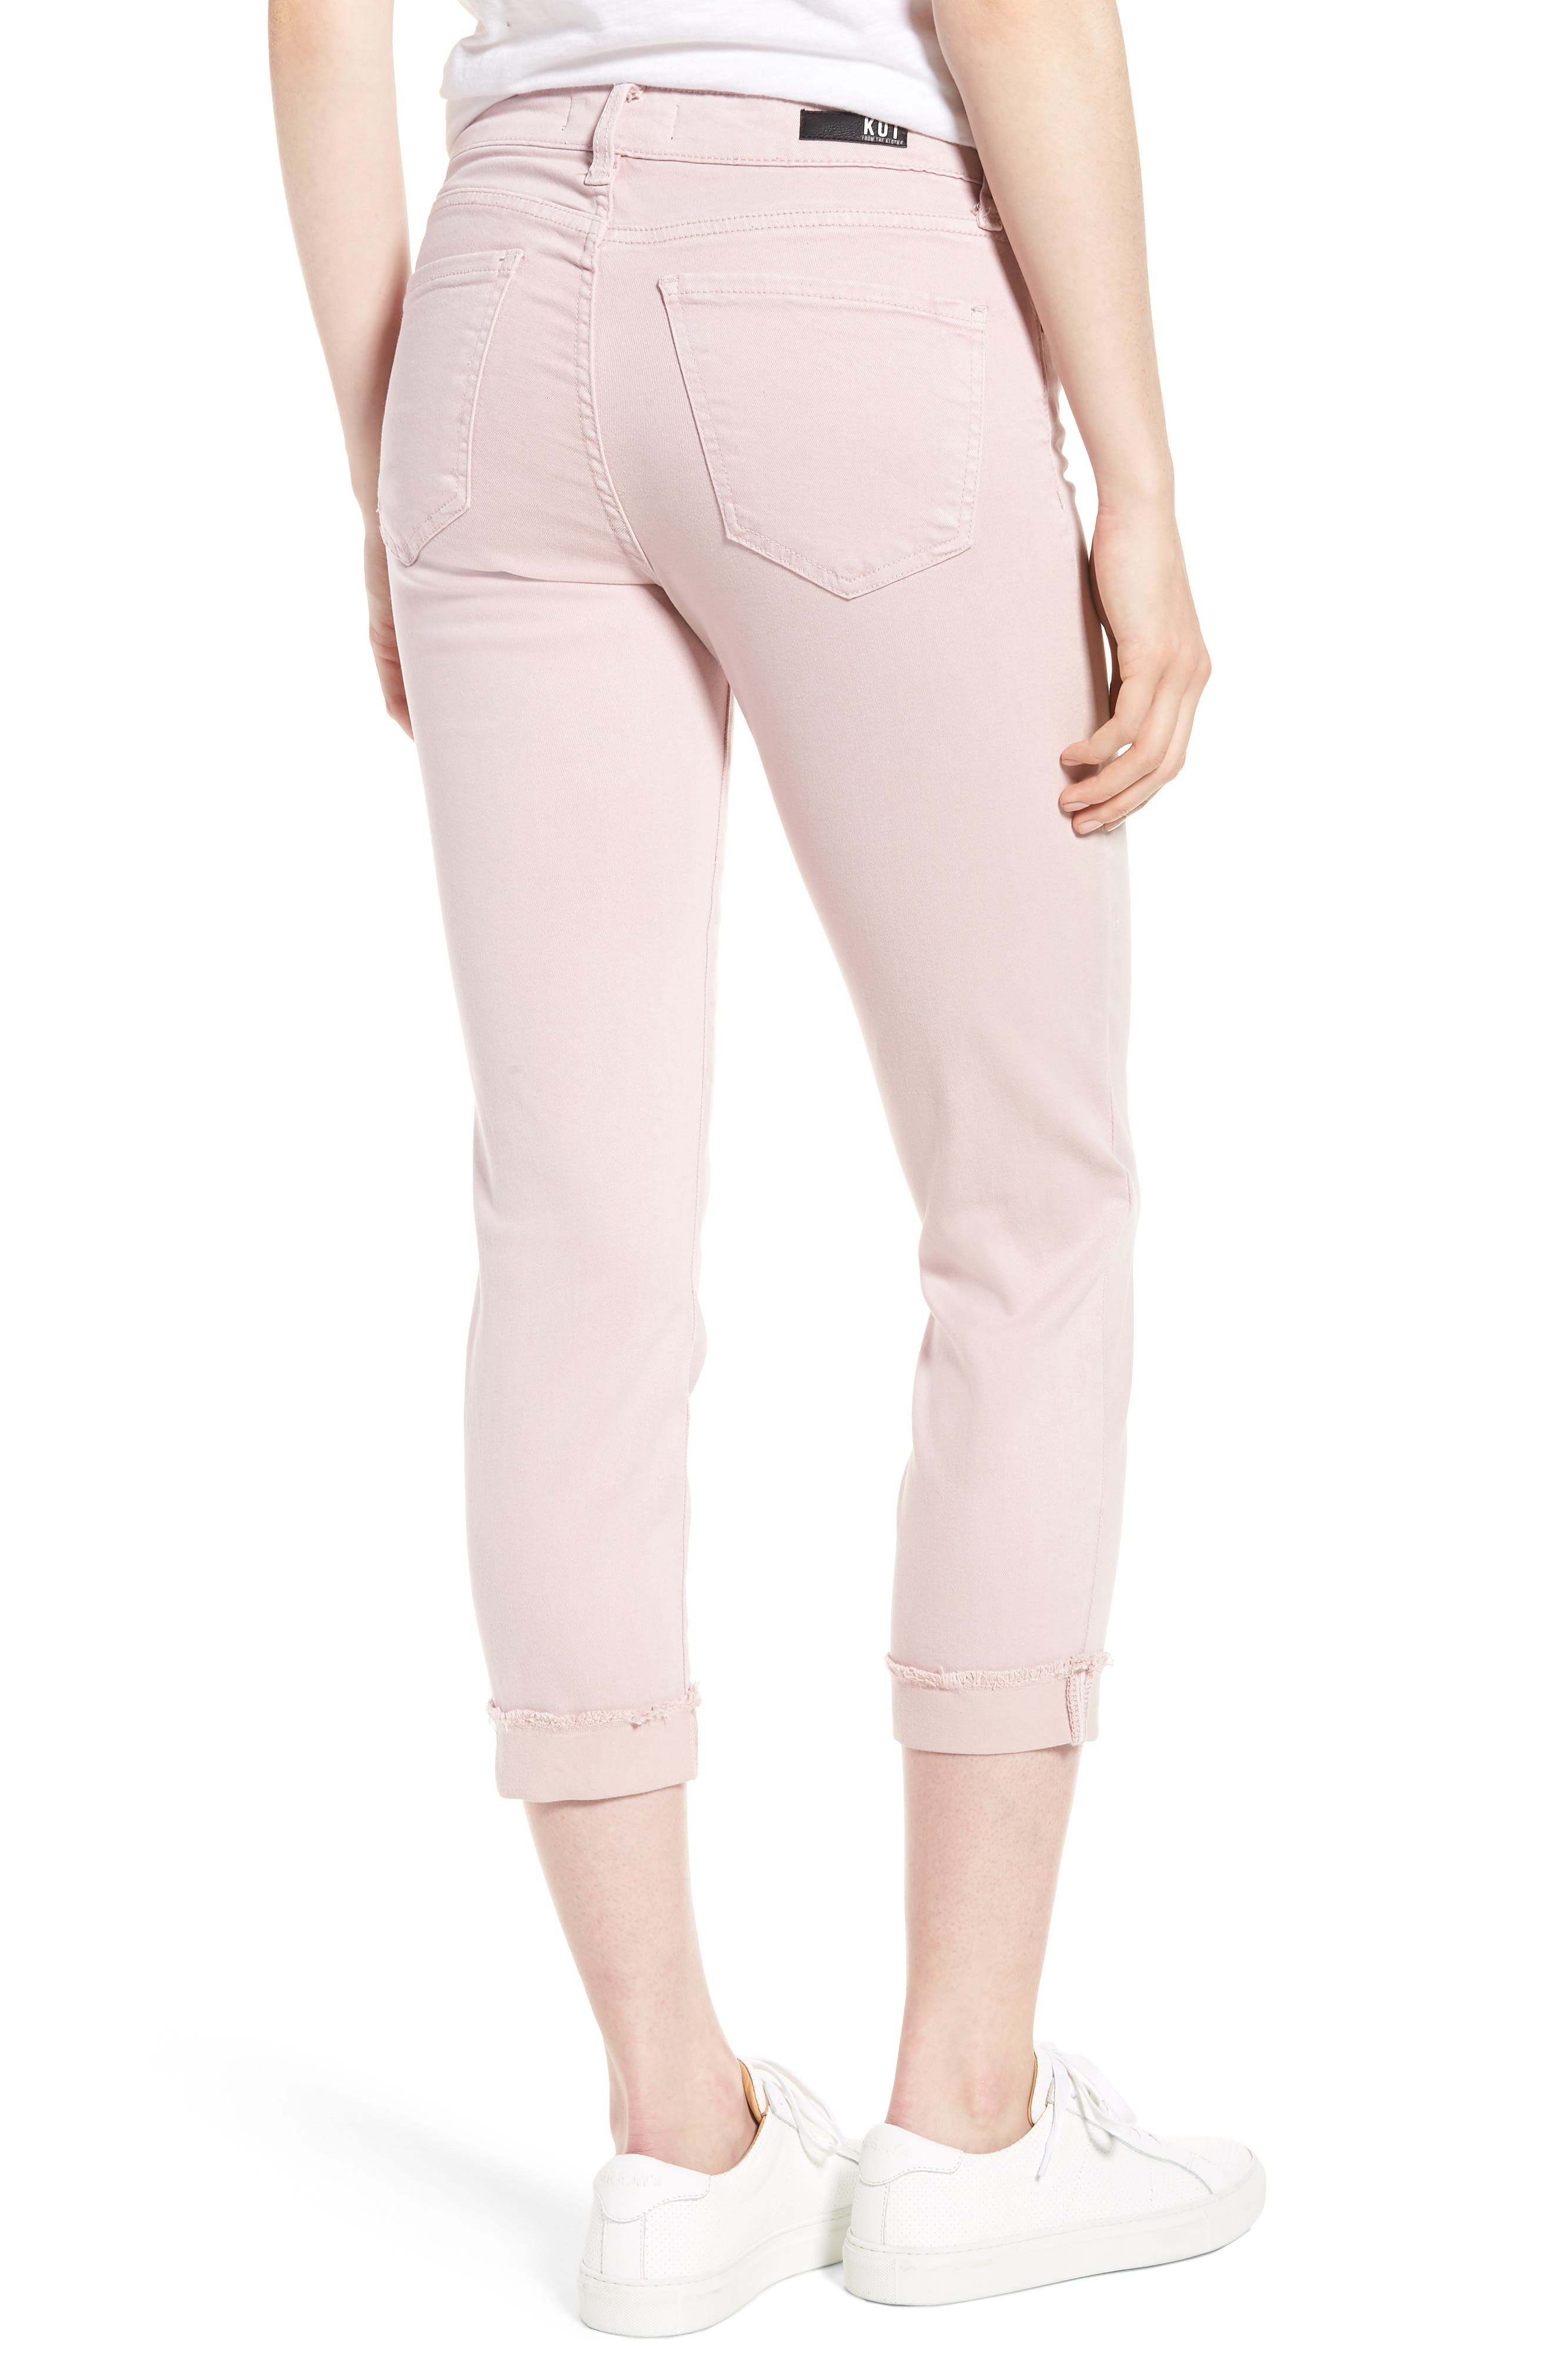 KUT from the Kloth Amy Crop Skinny Jeans,                             Alternate thumbnail 2, color,